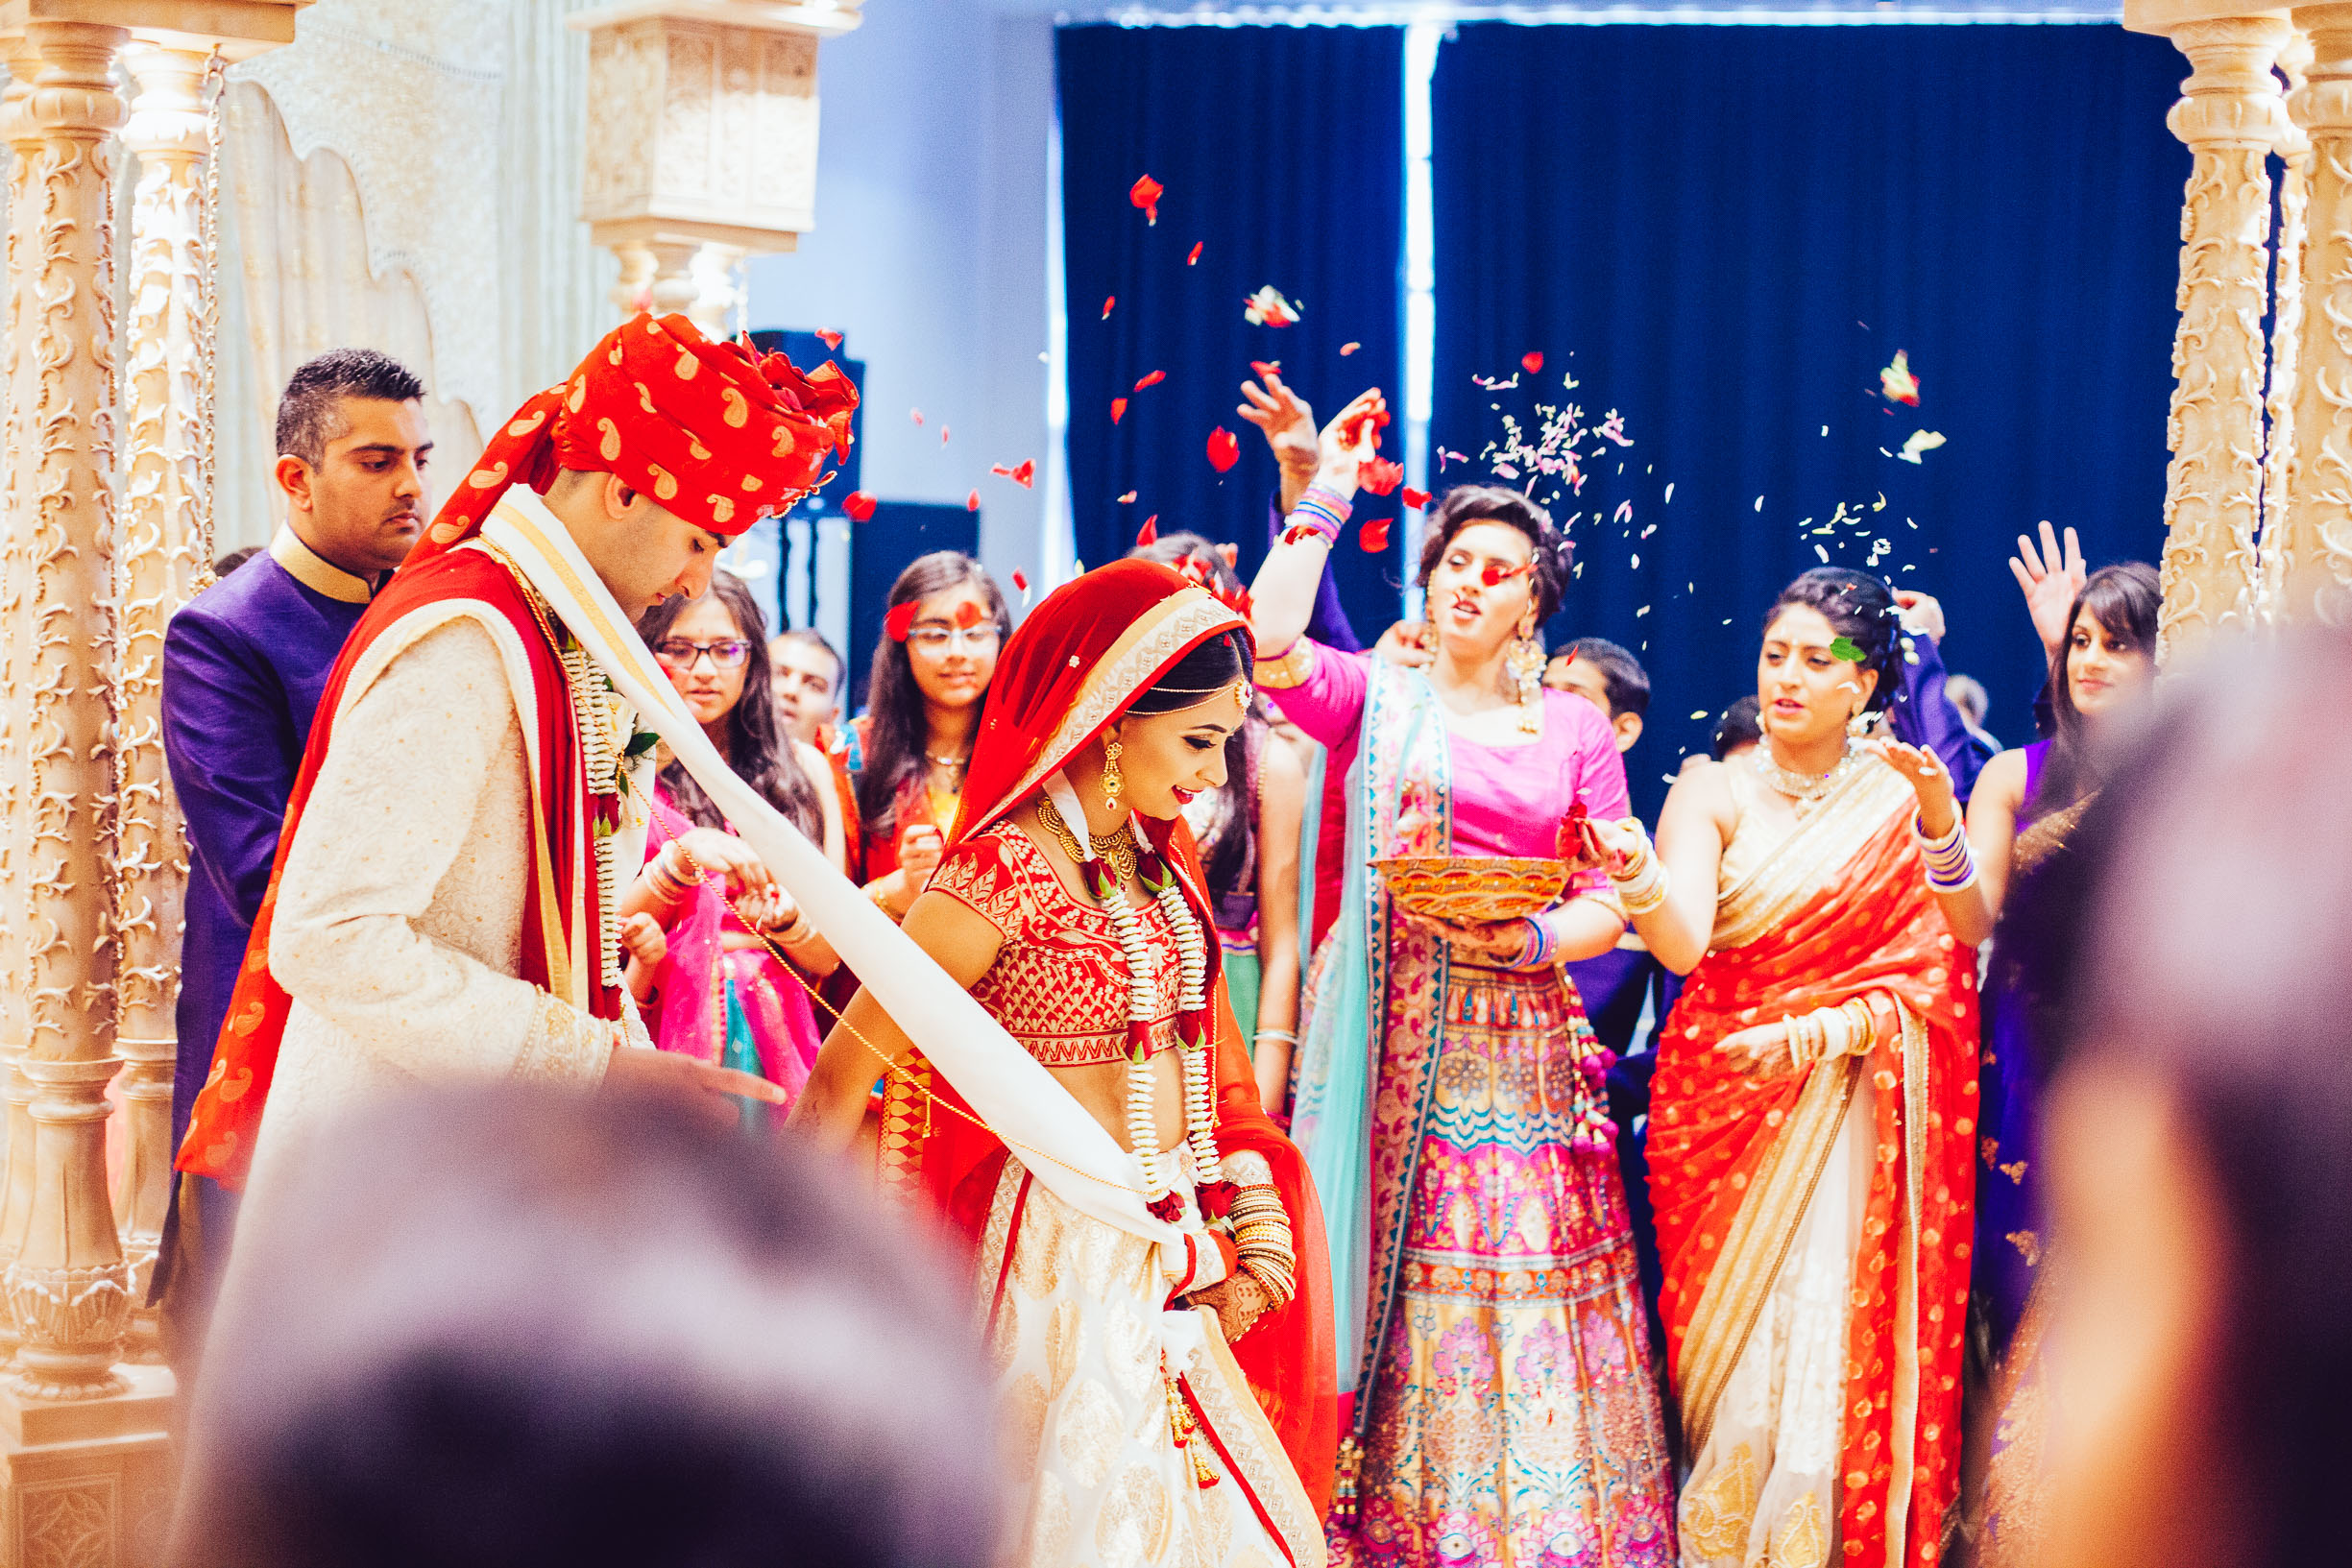 amit&ceema_eden_moments_wedding_photography-13